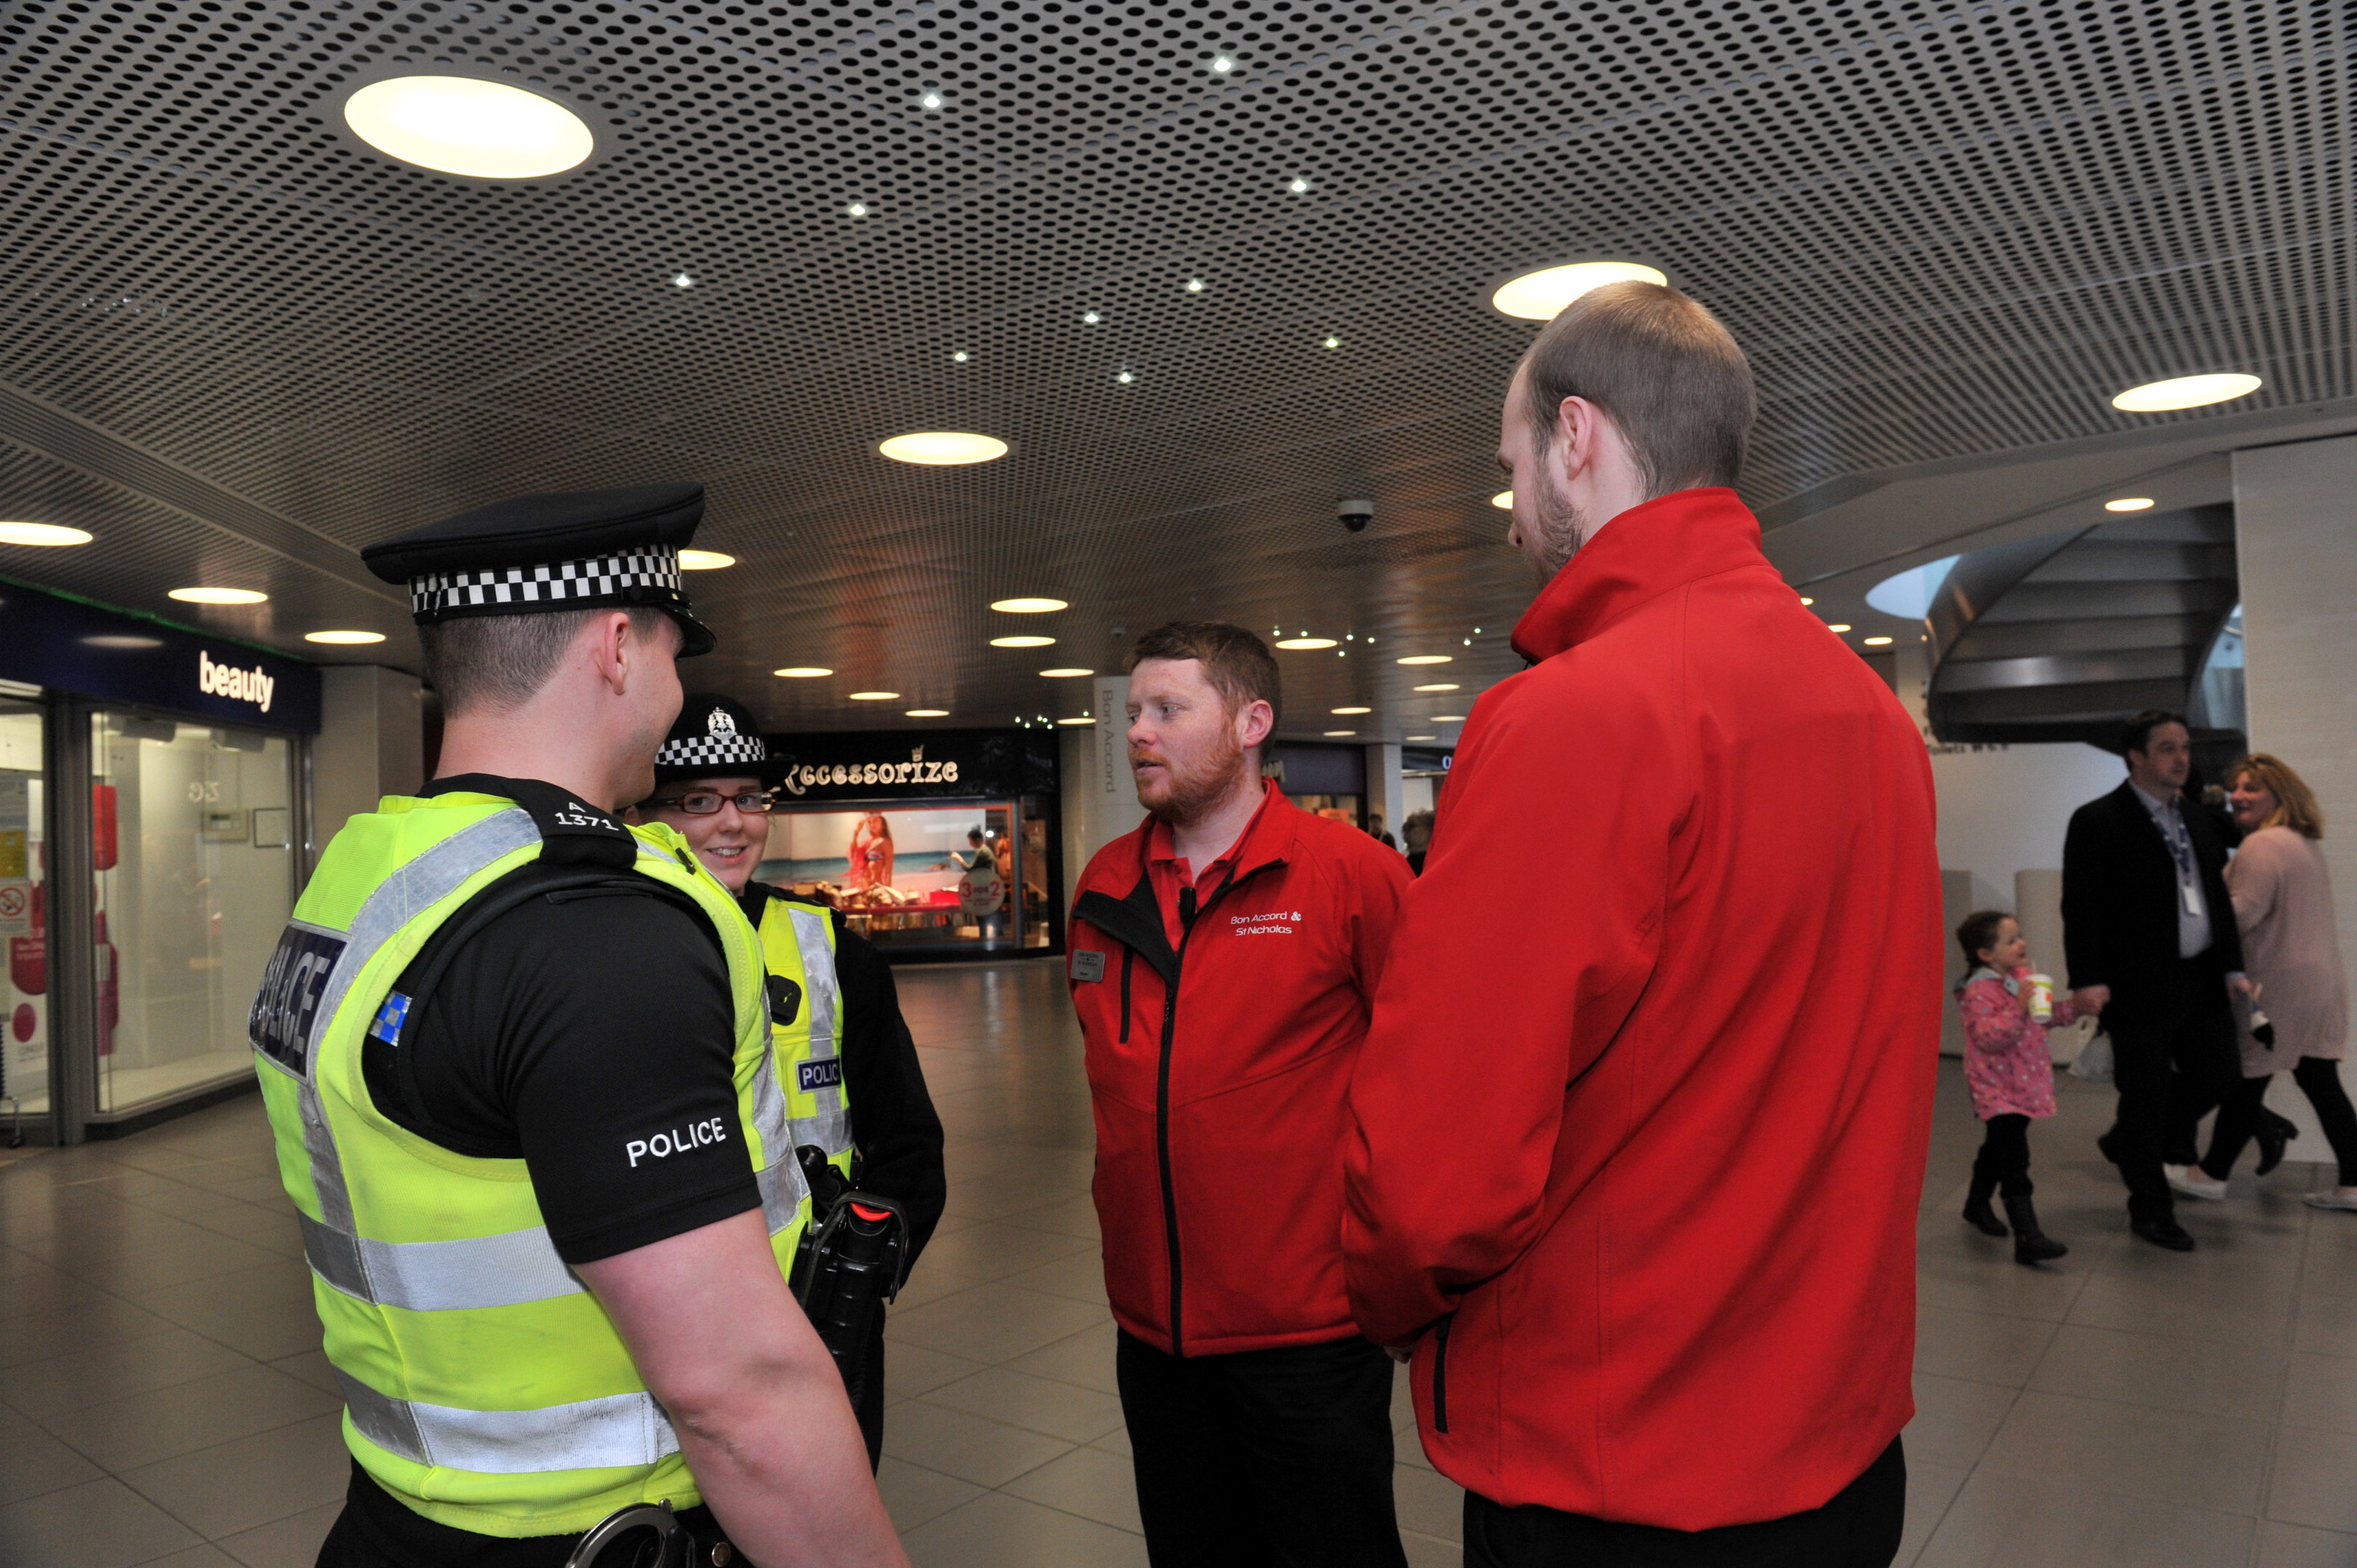 From left, Pc Mark McKenzie and Pc Jessica McGuckin with Bon Accord Centre security staff Steven Leask and Stephen Smith.